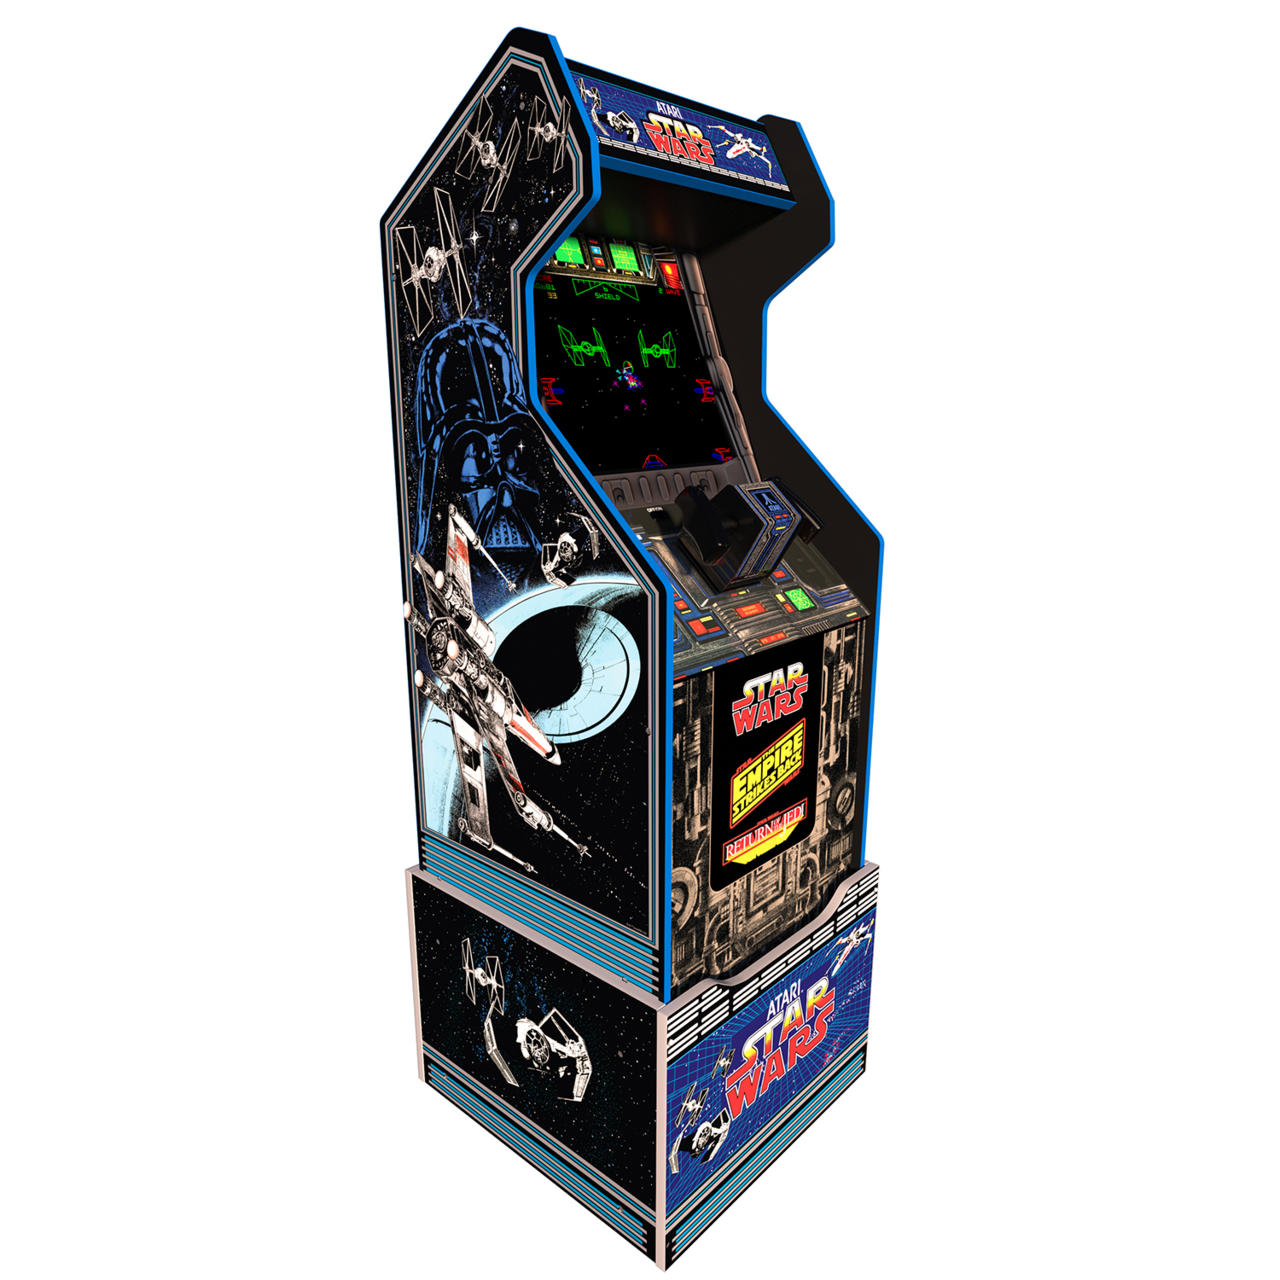 The Arcade1Up Star Wars arcade cabinet features three classic games.